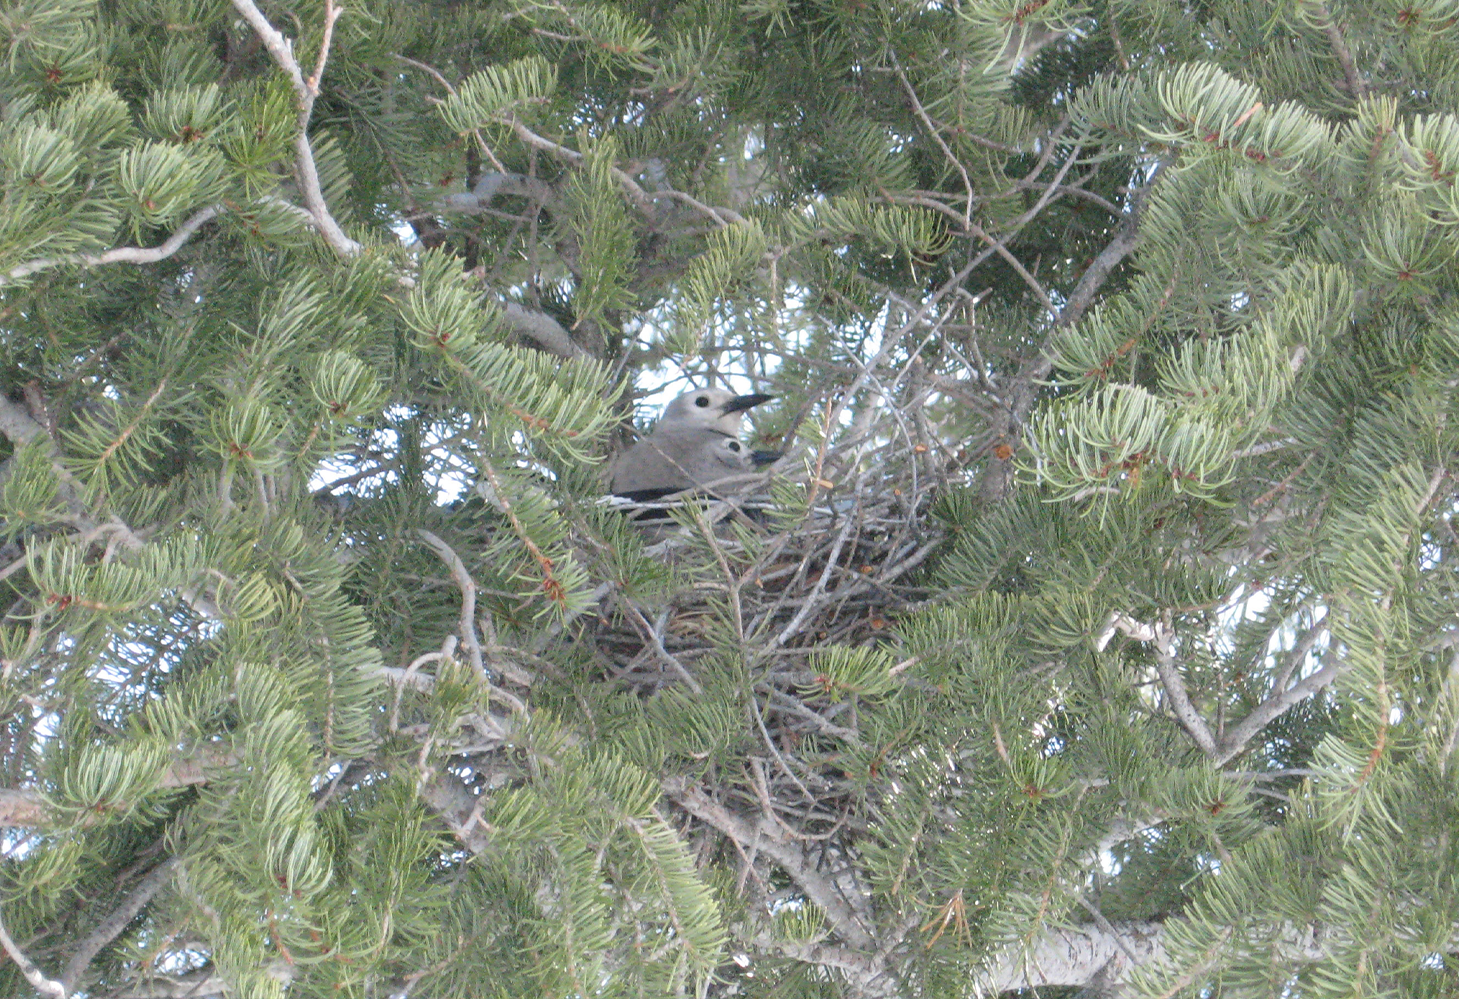 A Clark's Nutcracker sits in its bird nest along with chicks